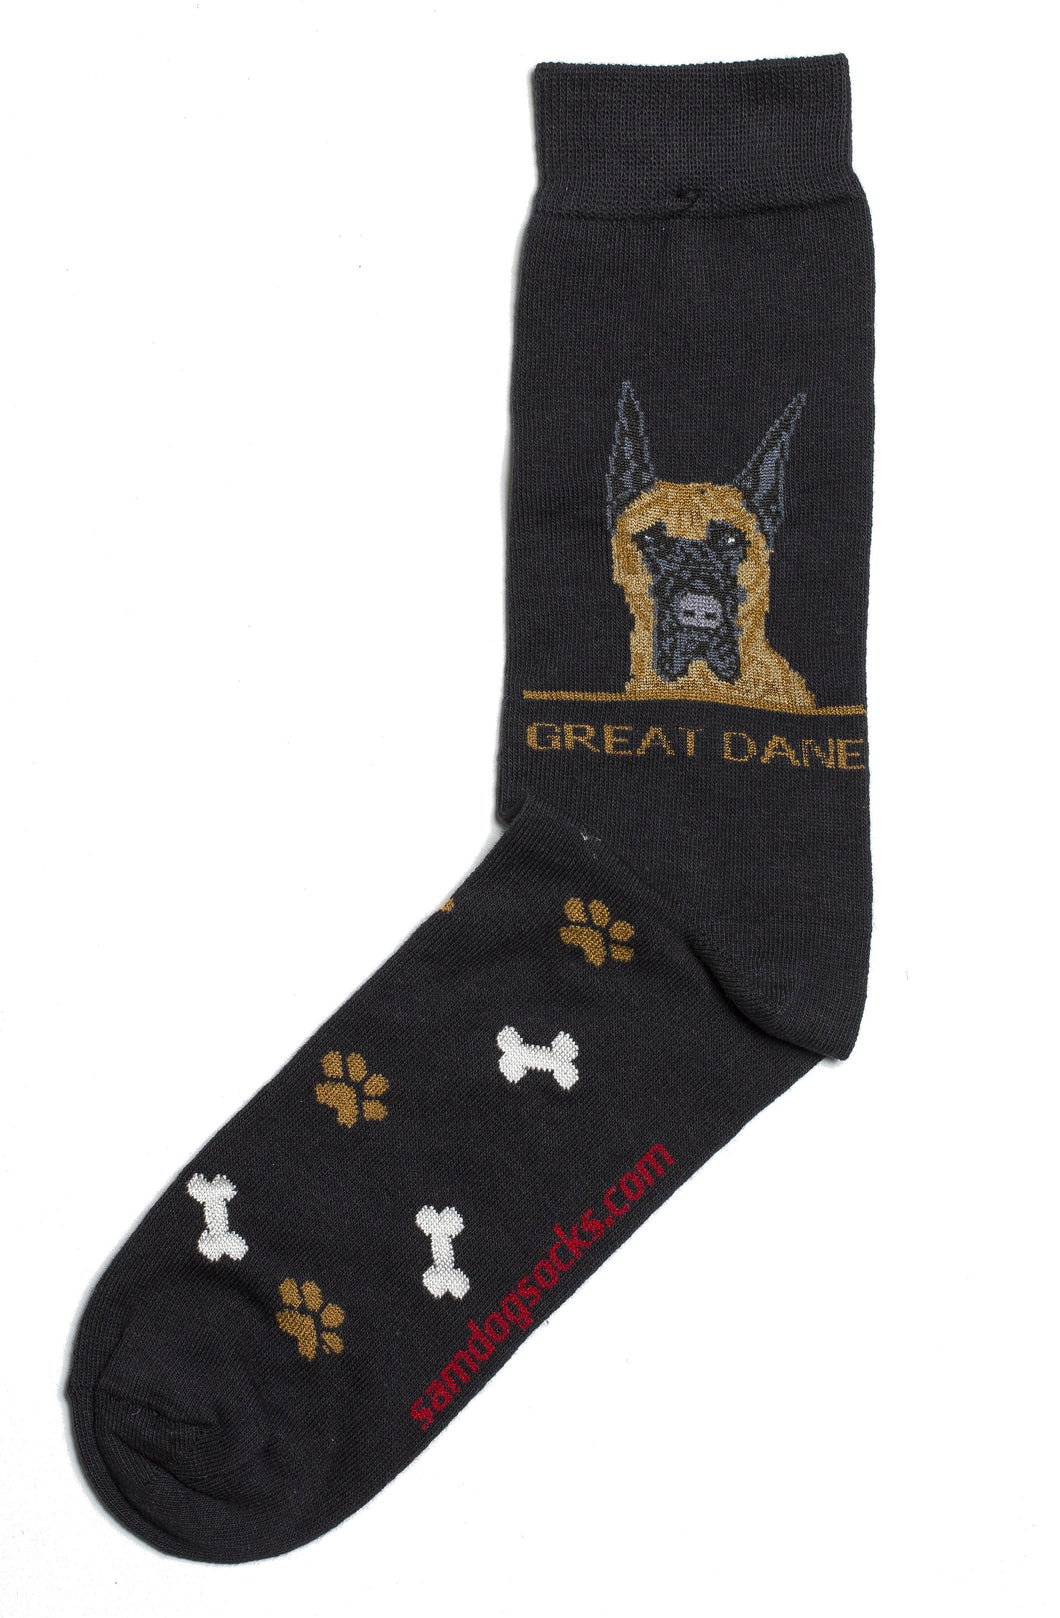 Great Dane Dog Socks Mens - samnoveltysocks.com